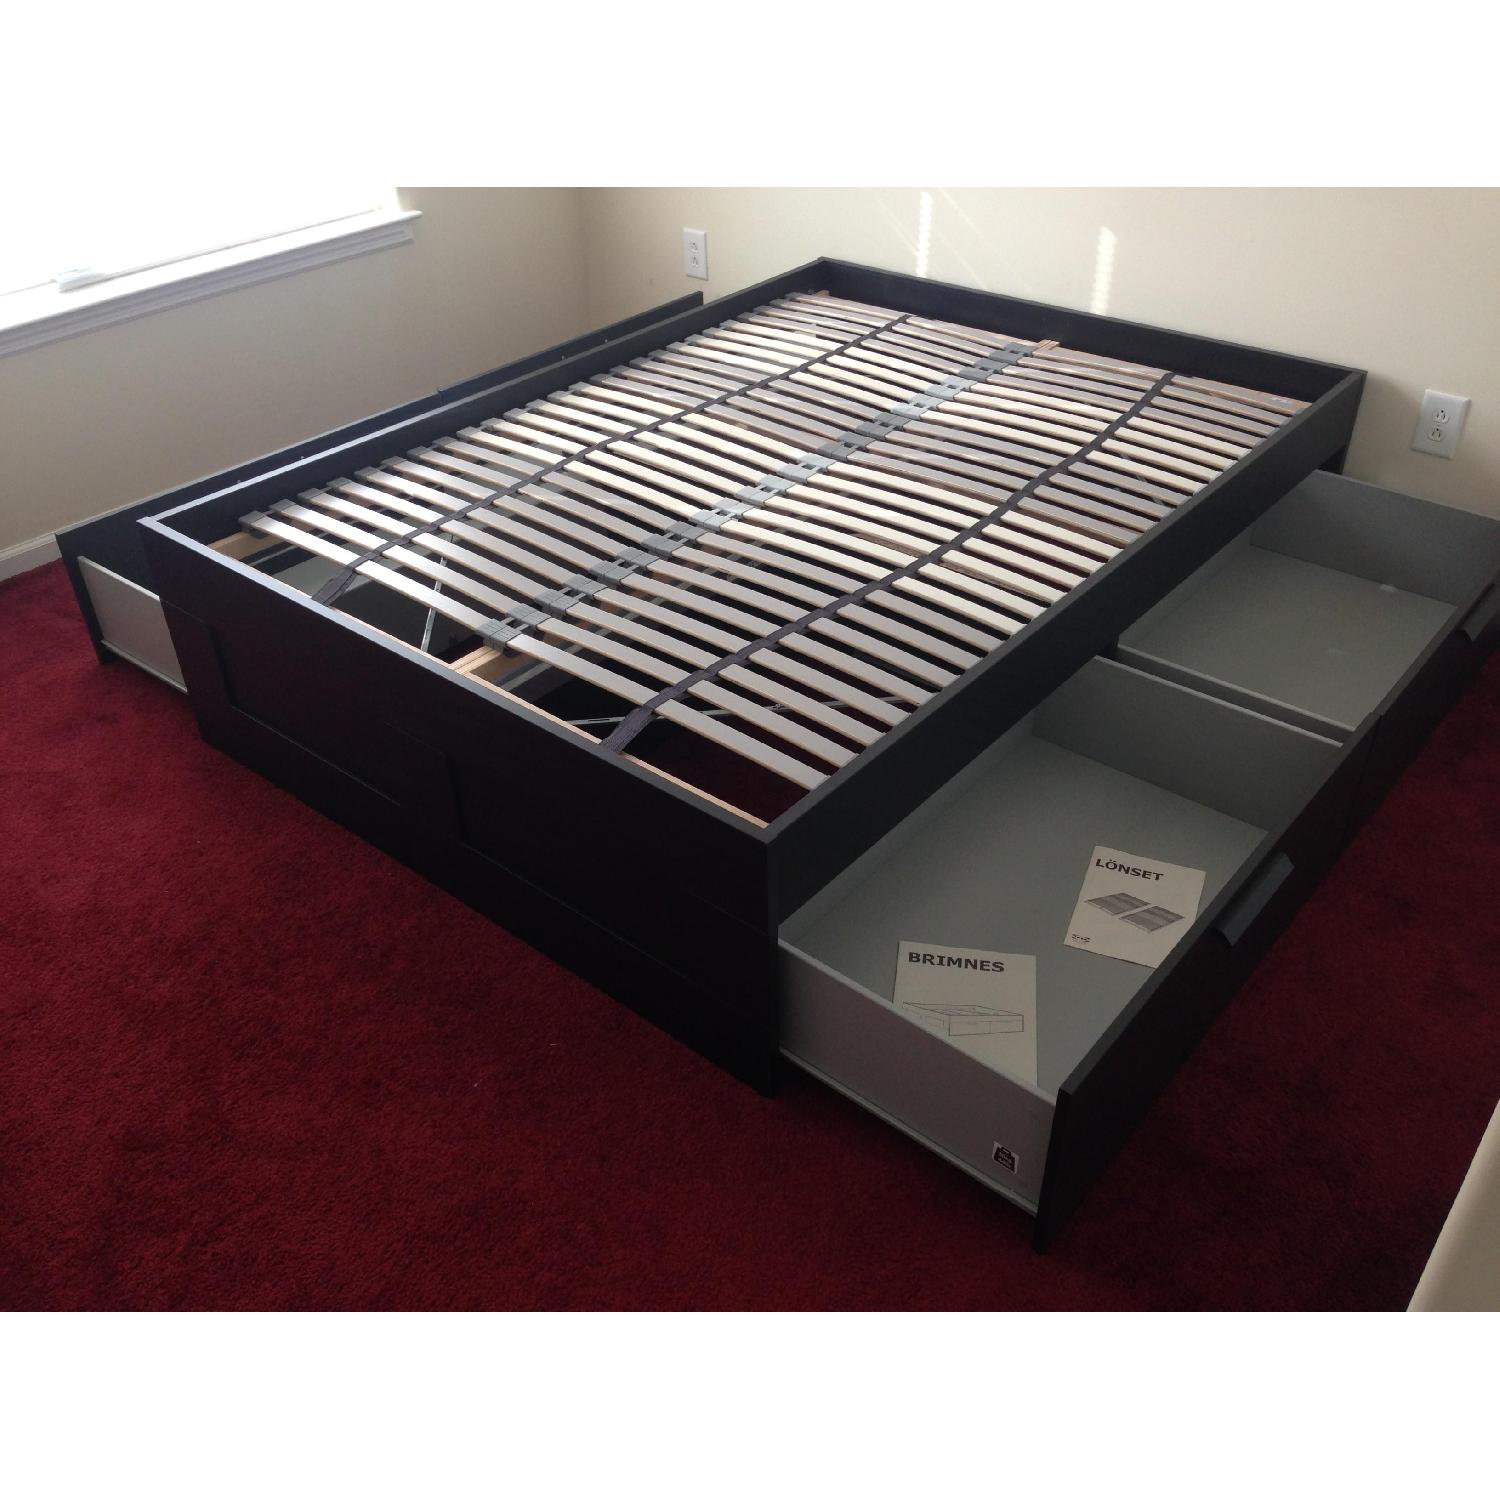 Ikea Brimnes Captains Full Size Bed w/ 4 Drawers - image-4